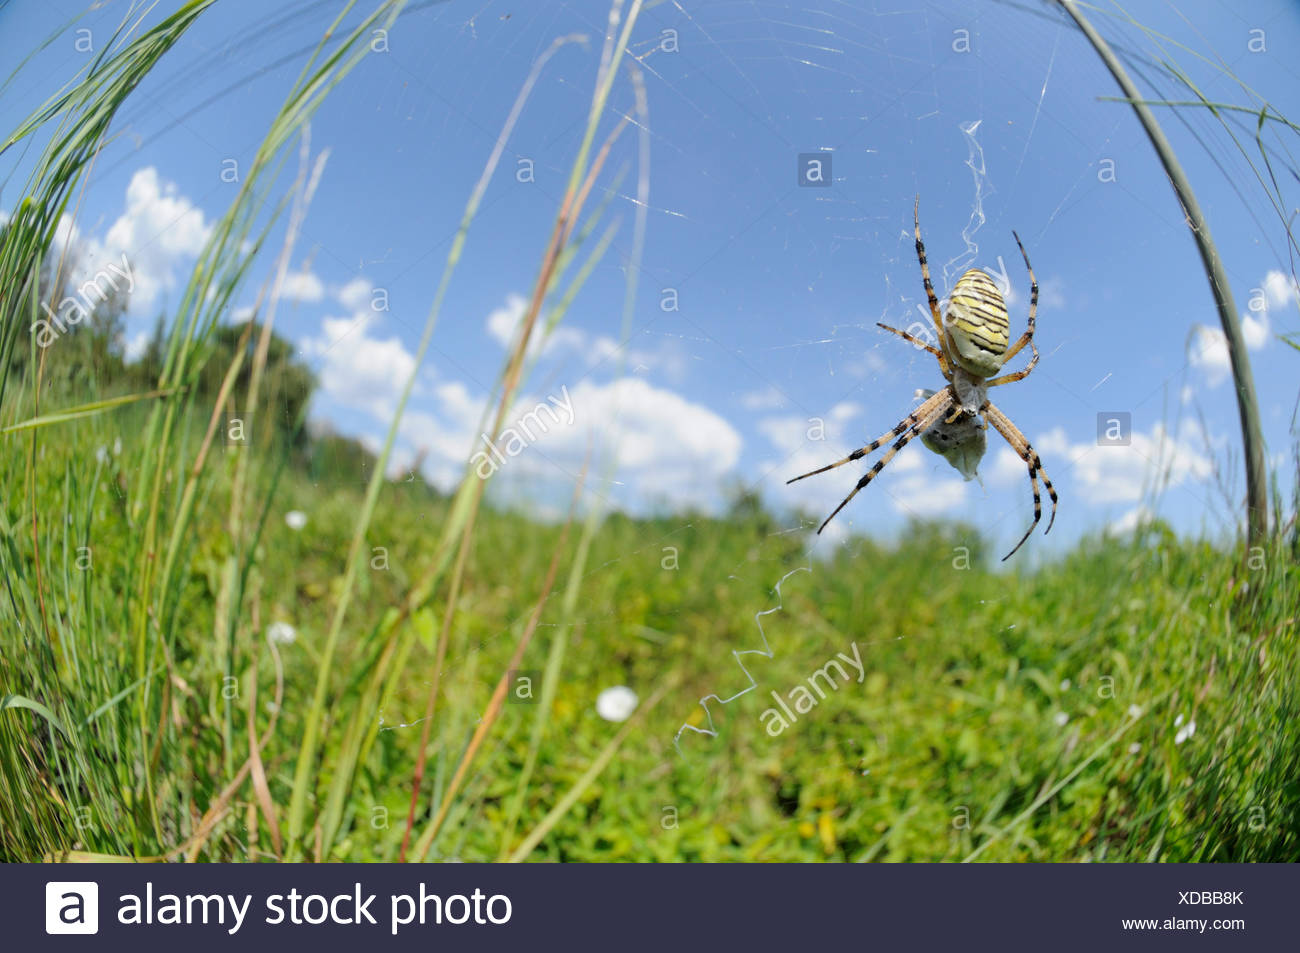 Wide angele capture of a Wasp Spider waiting on her web - Stock Image